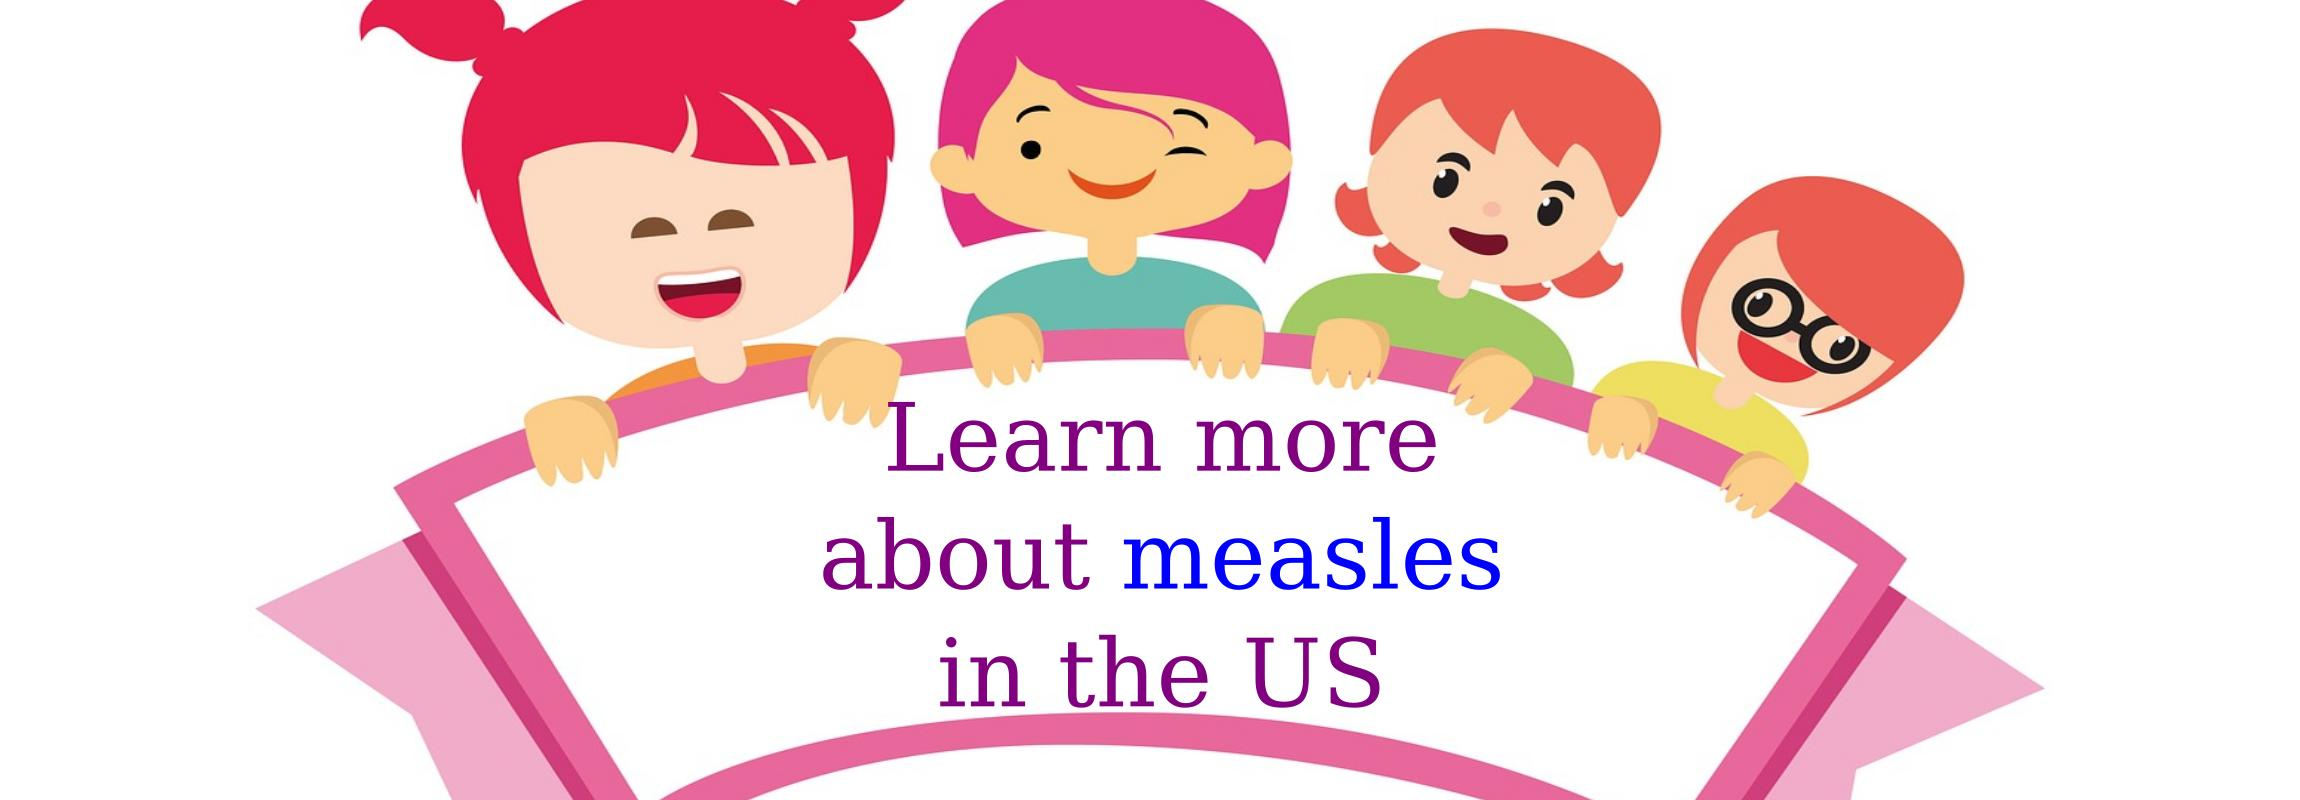 image, learn more about Measles in the US